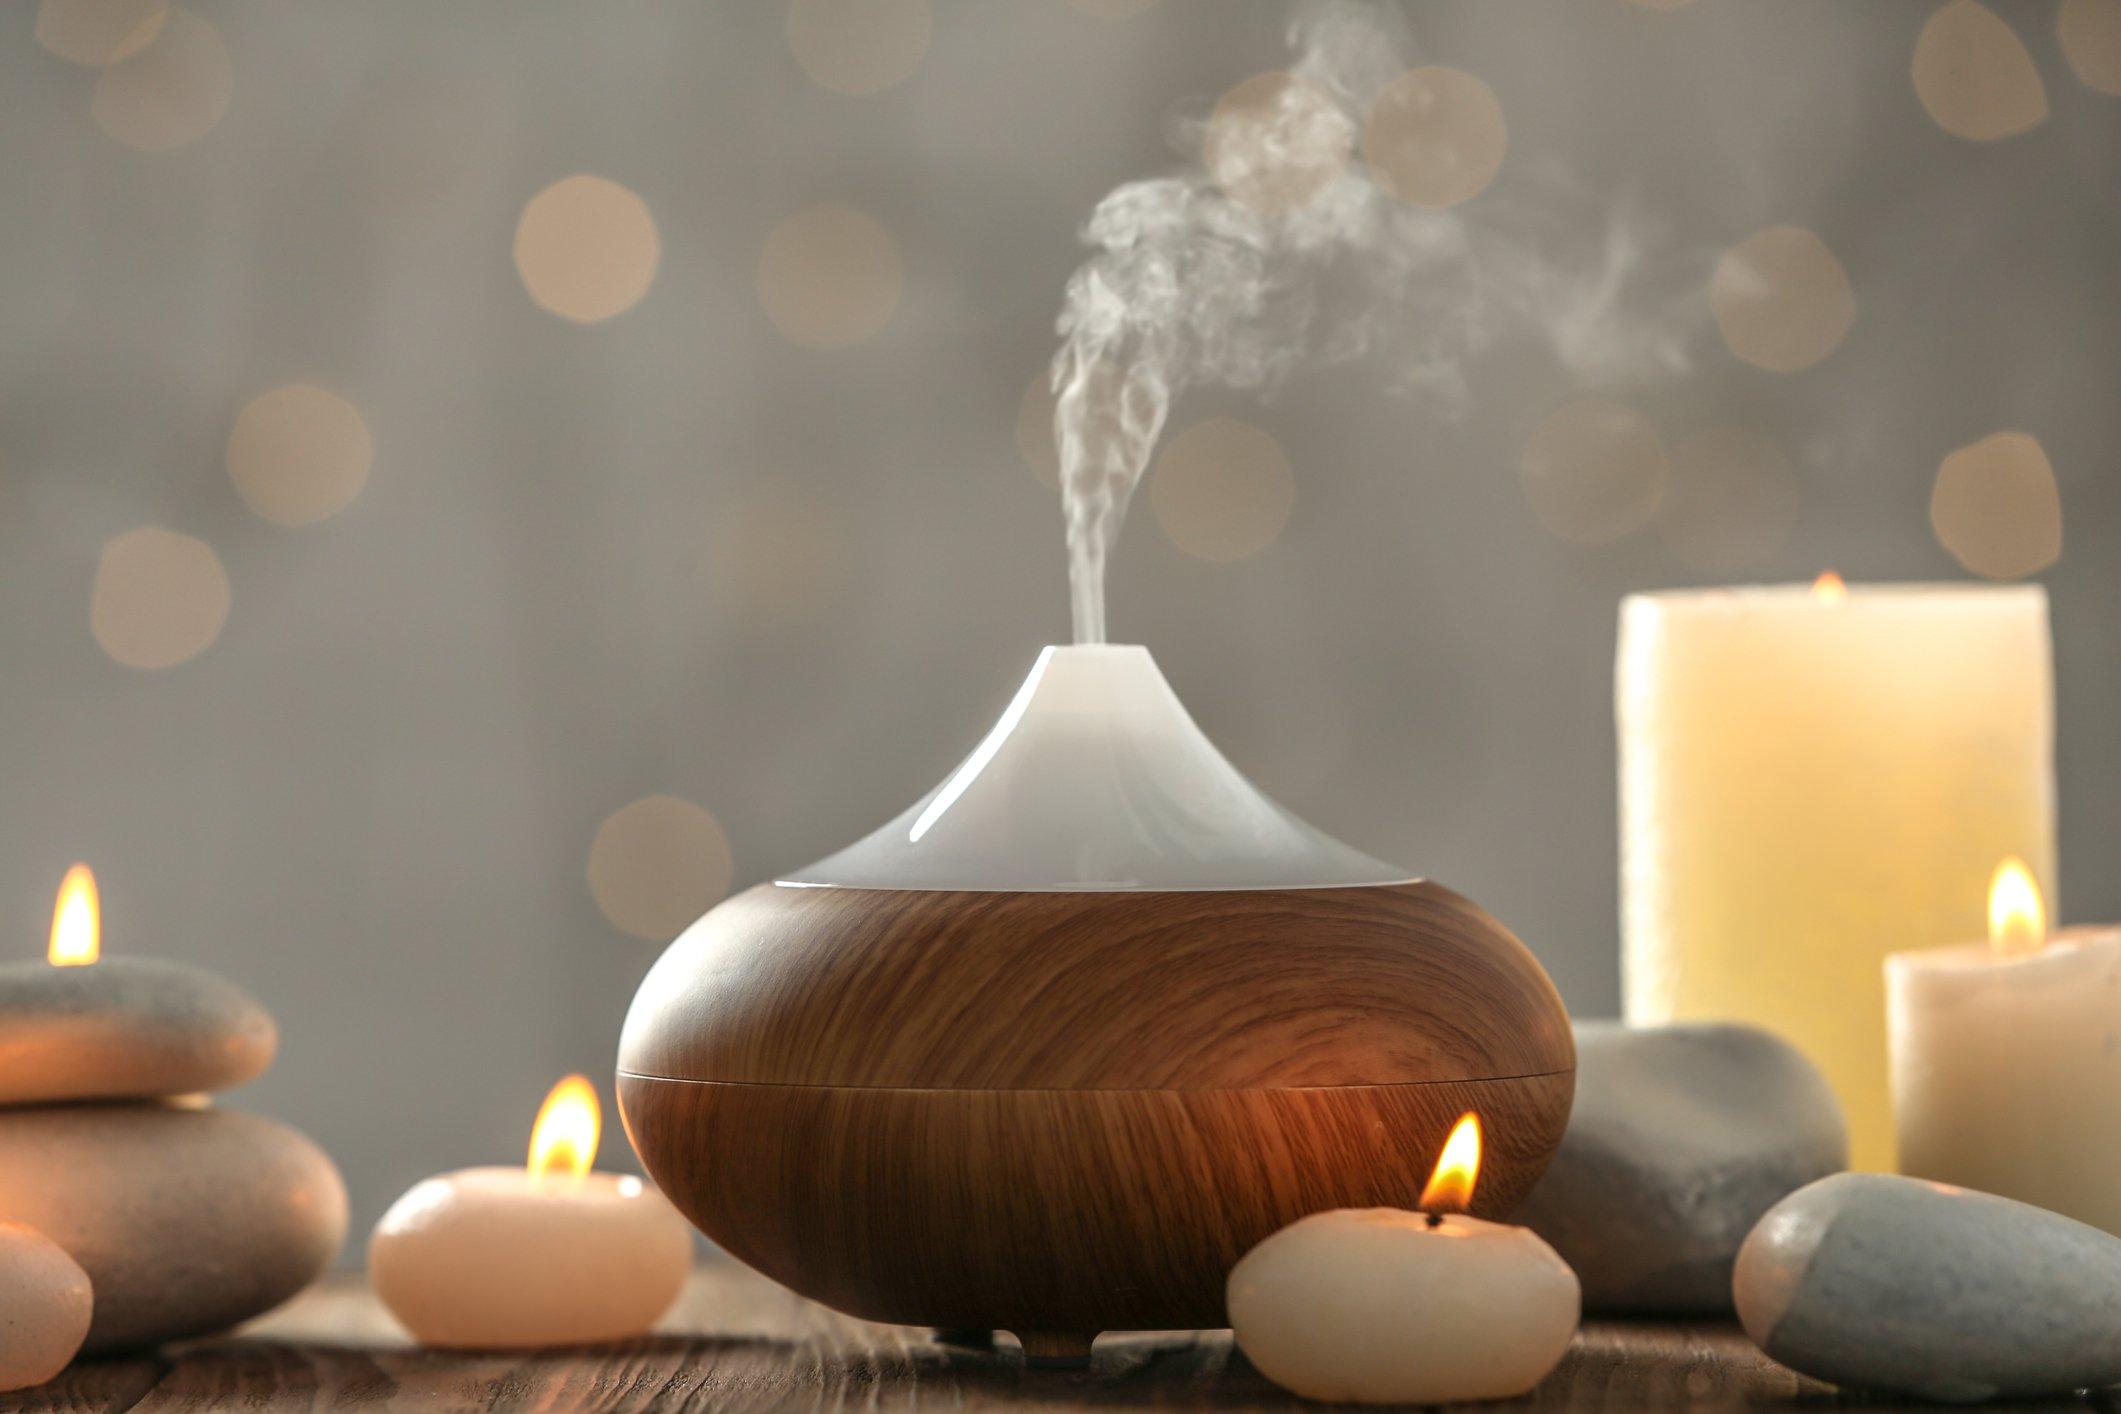 You can add a few drops of essential oils to your diffuser for a nice smelling home. (iStock Photo)